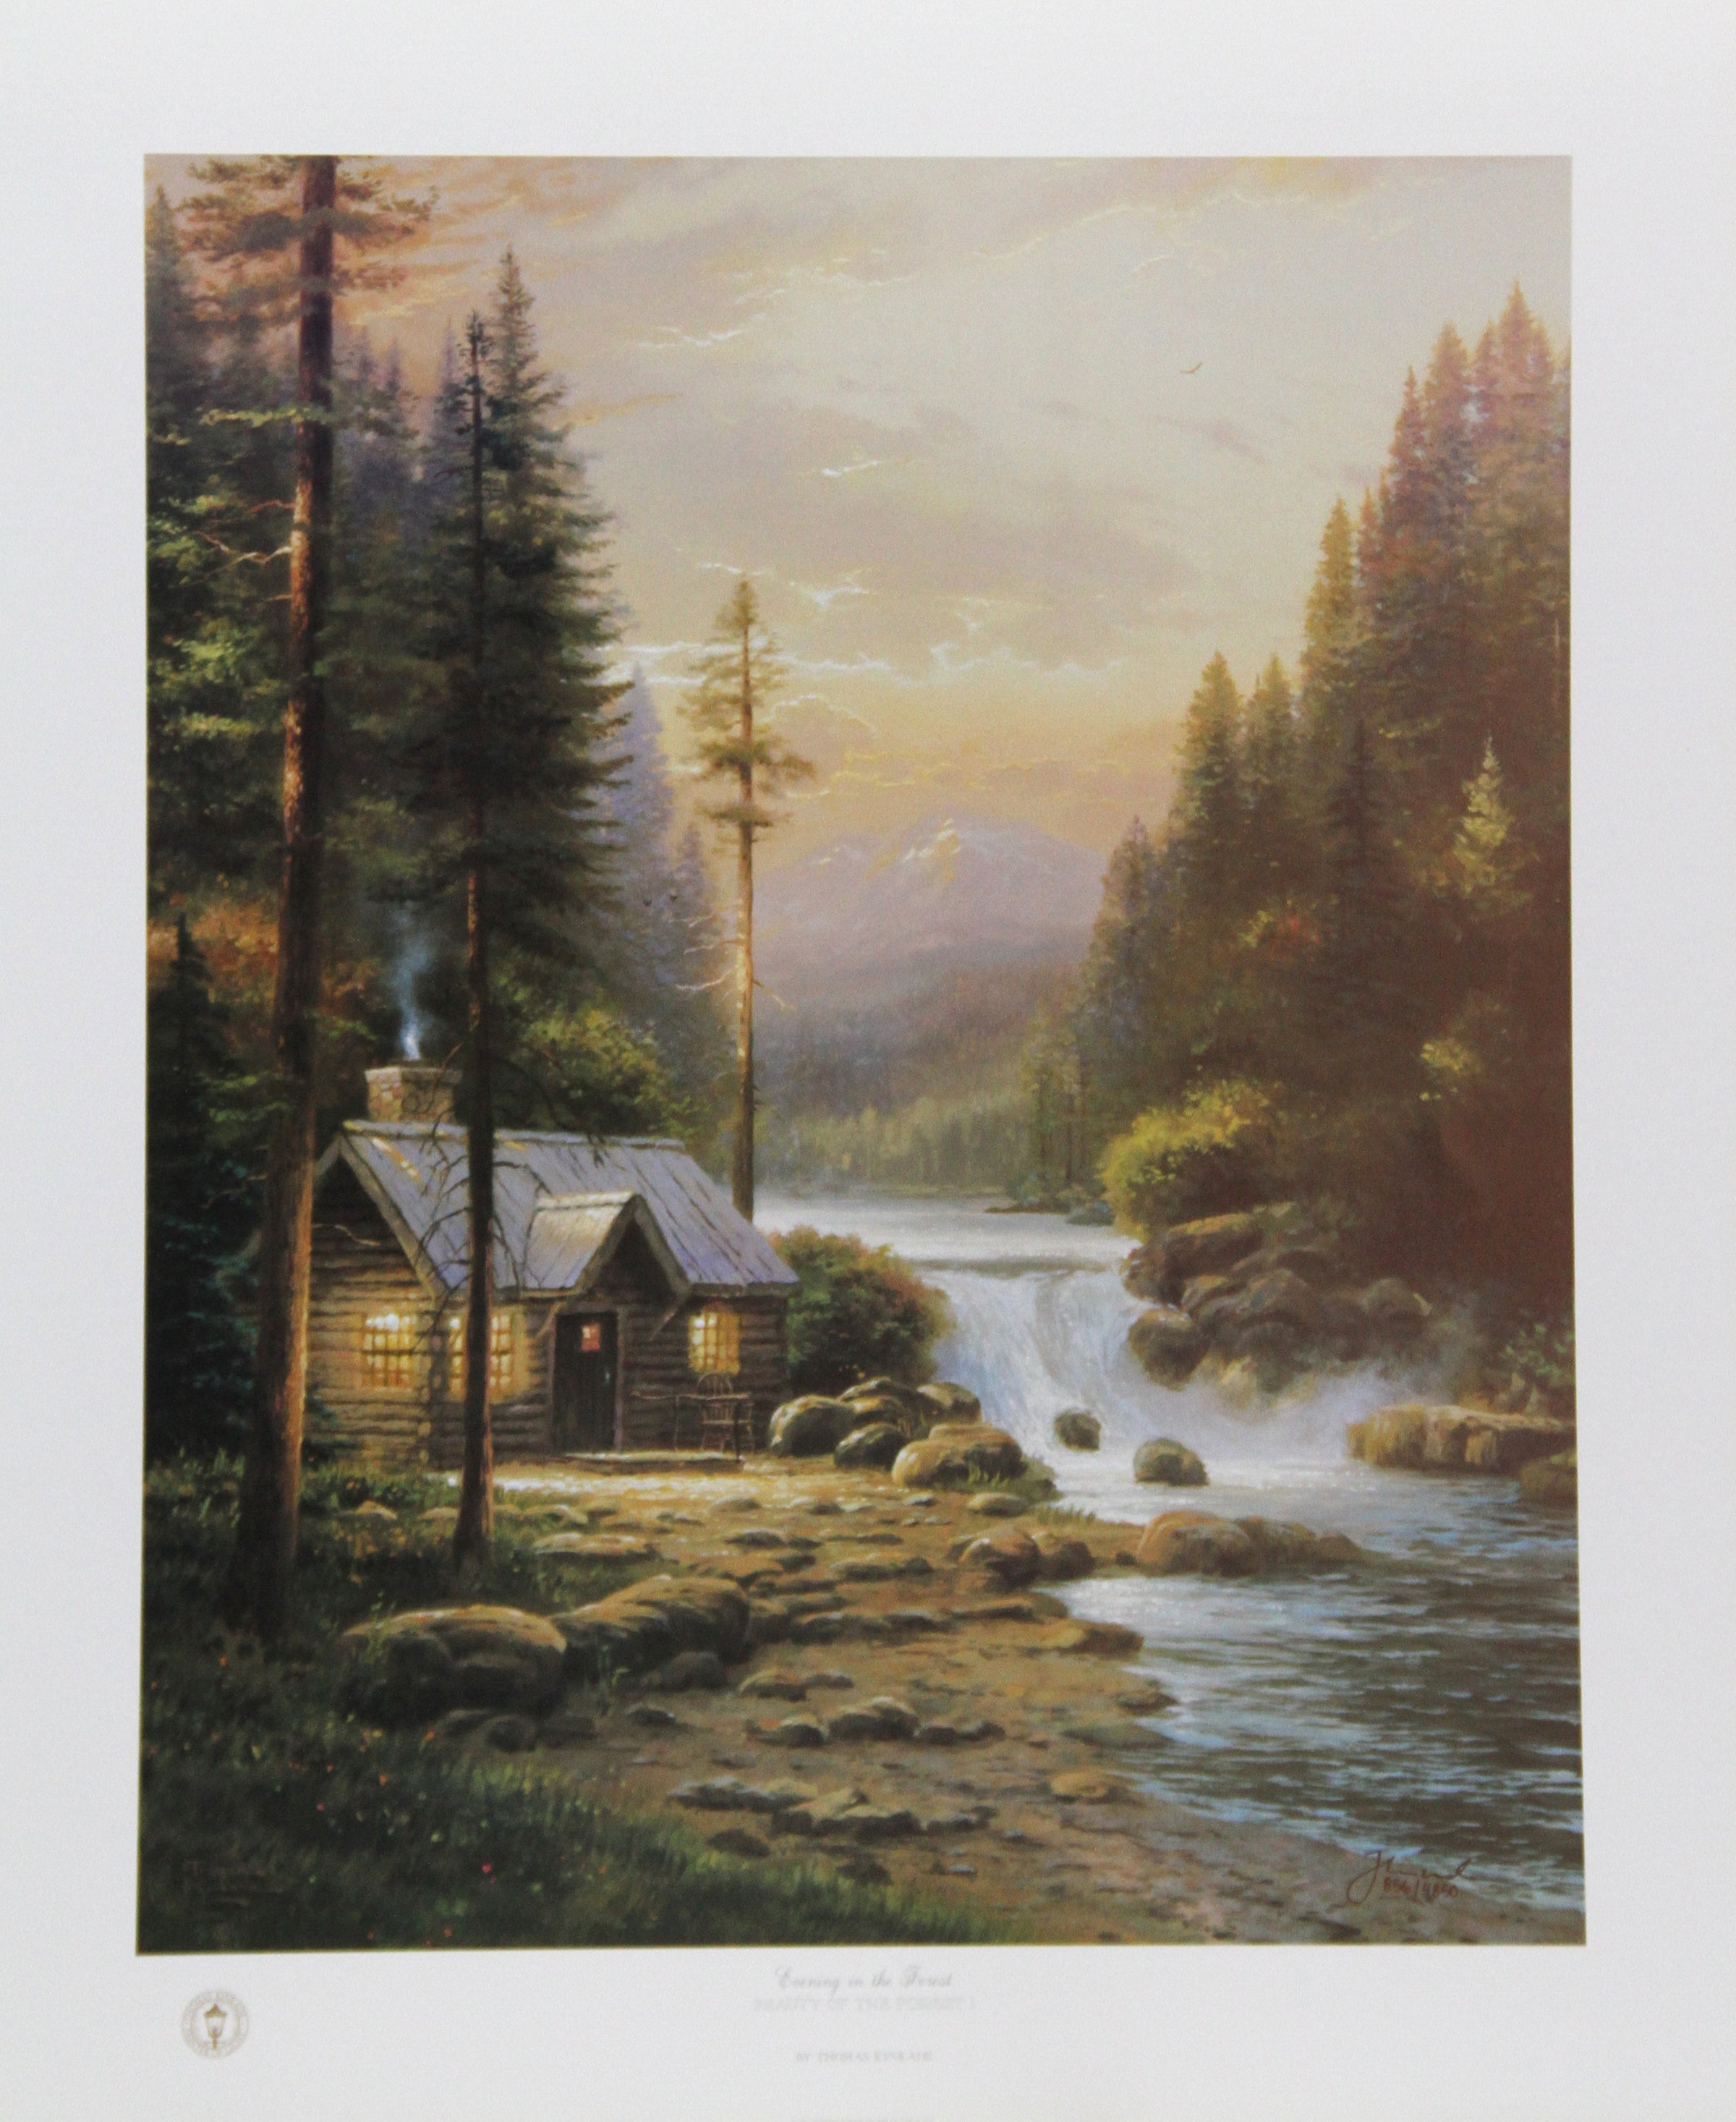 Thomas Kinkade, Evening in the Forest Lithograph - RoGallery